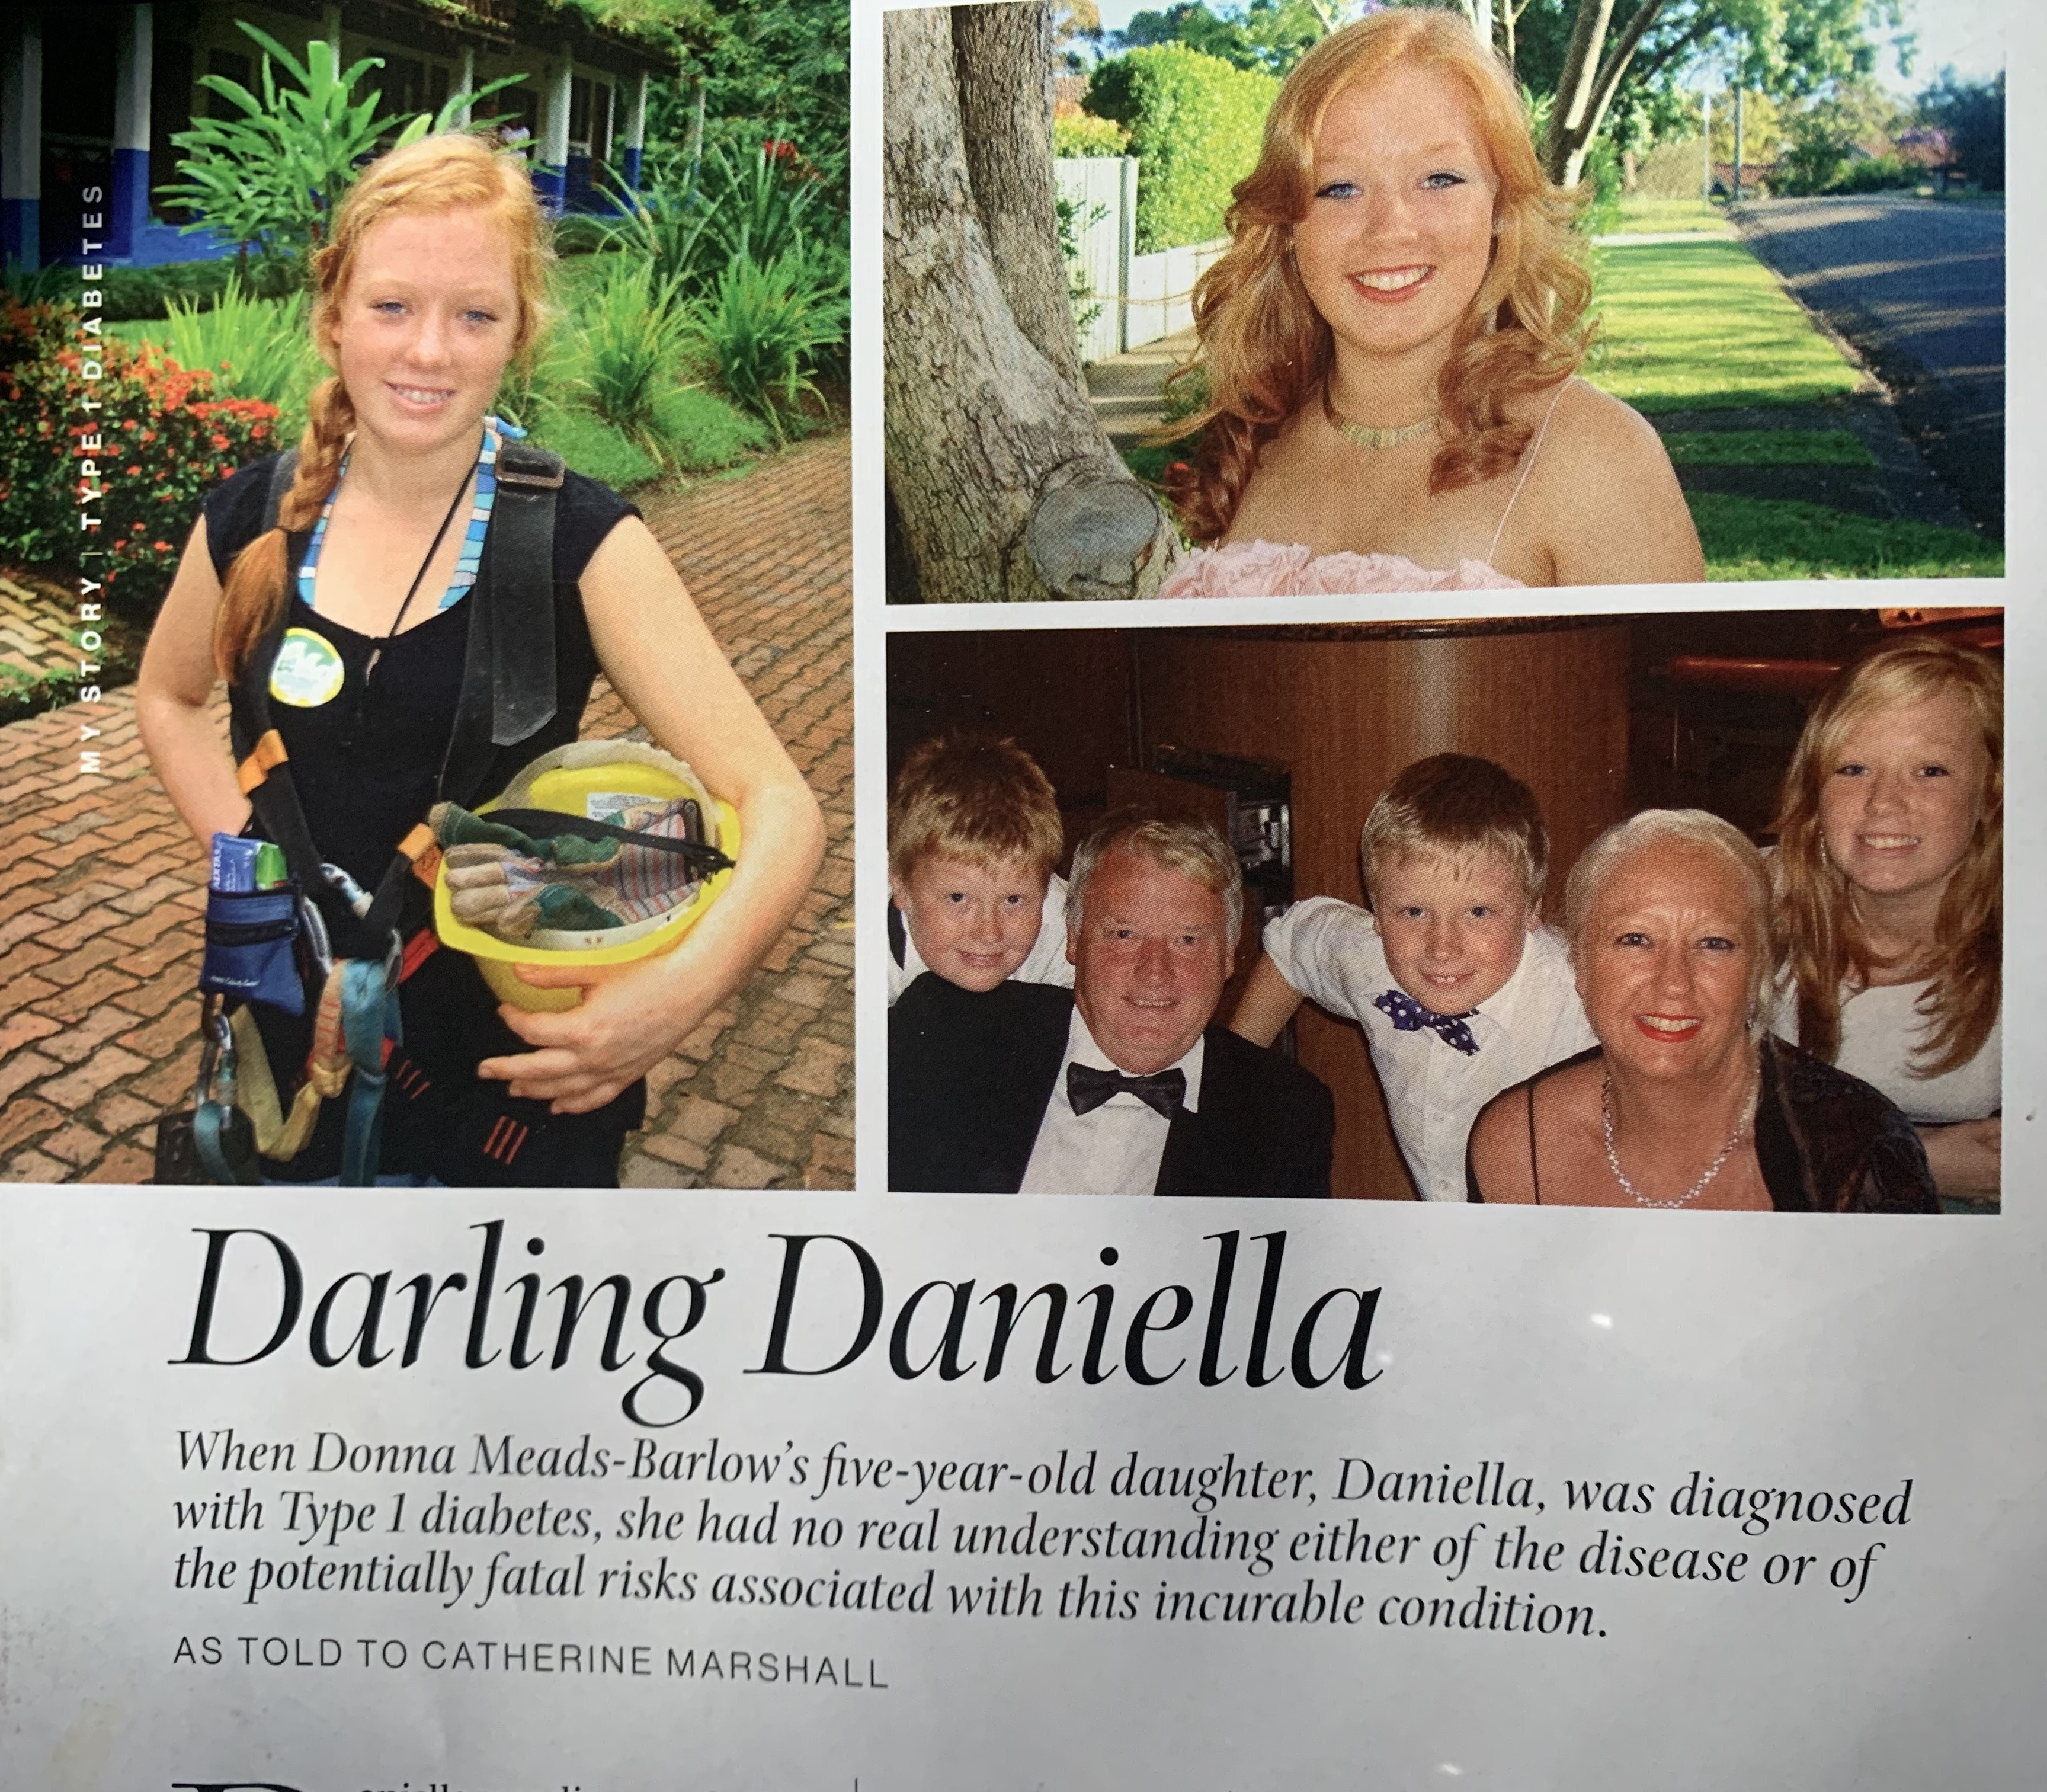 NOV19 My Story MindFood Darling Daniella-Type 1 Diabetes Awareness